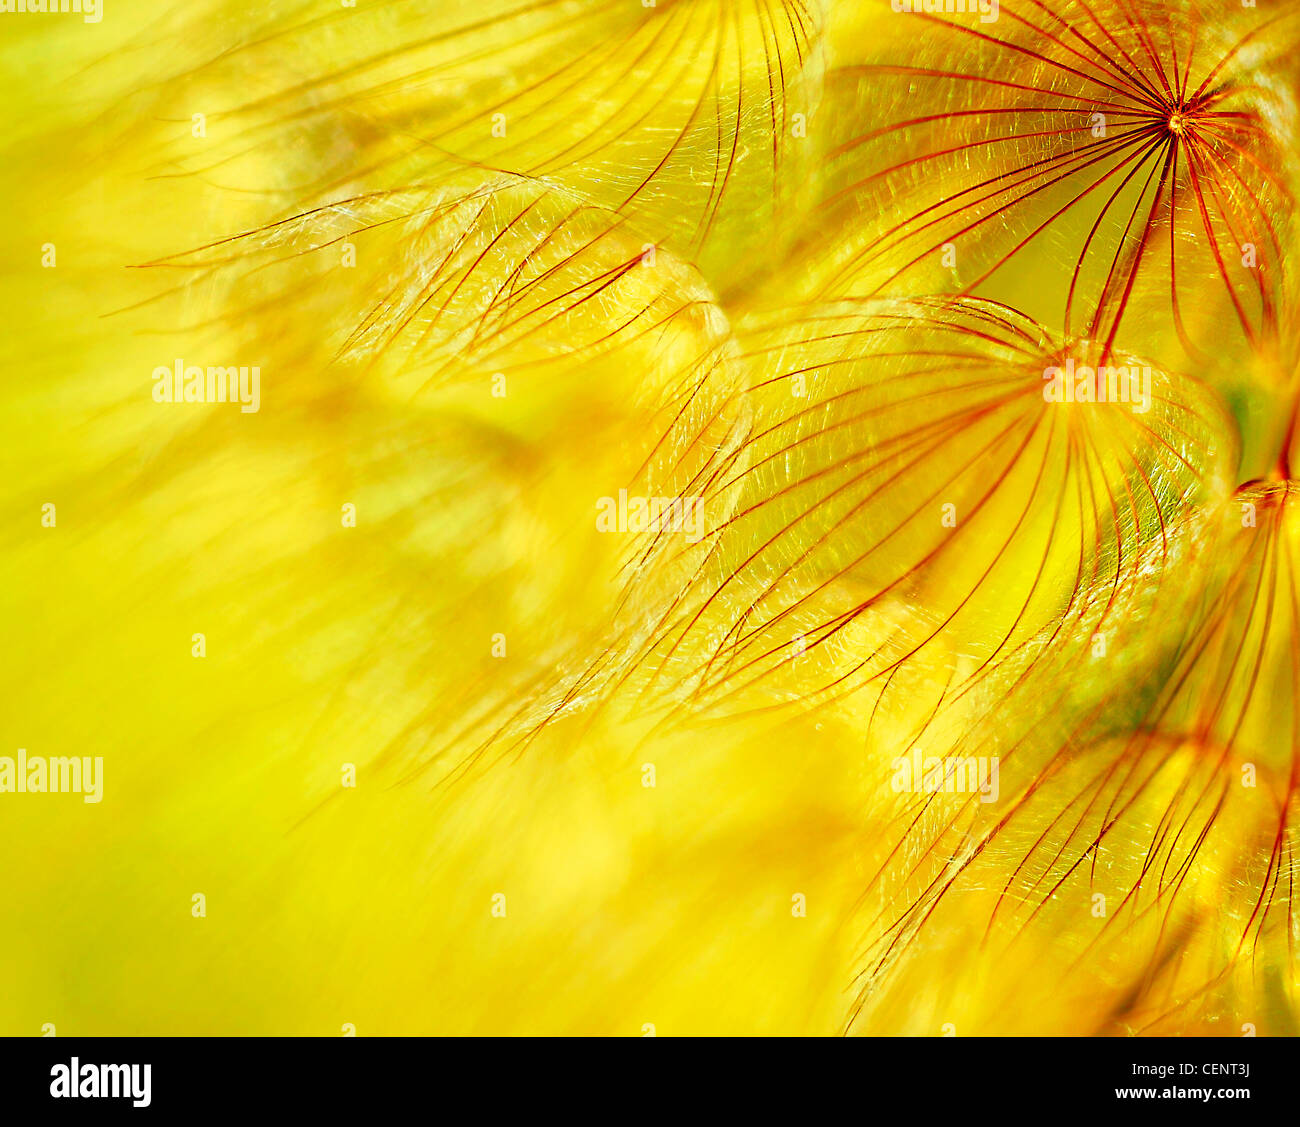 Abstract dandelion flower background, extreme closeup with soft focus, beautiful nature details - Stock Image